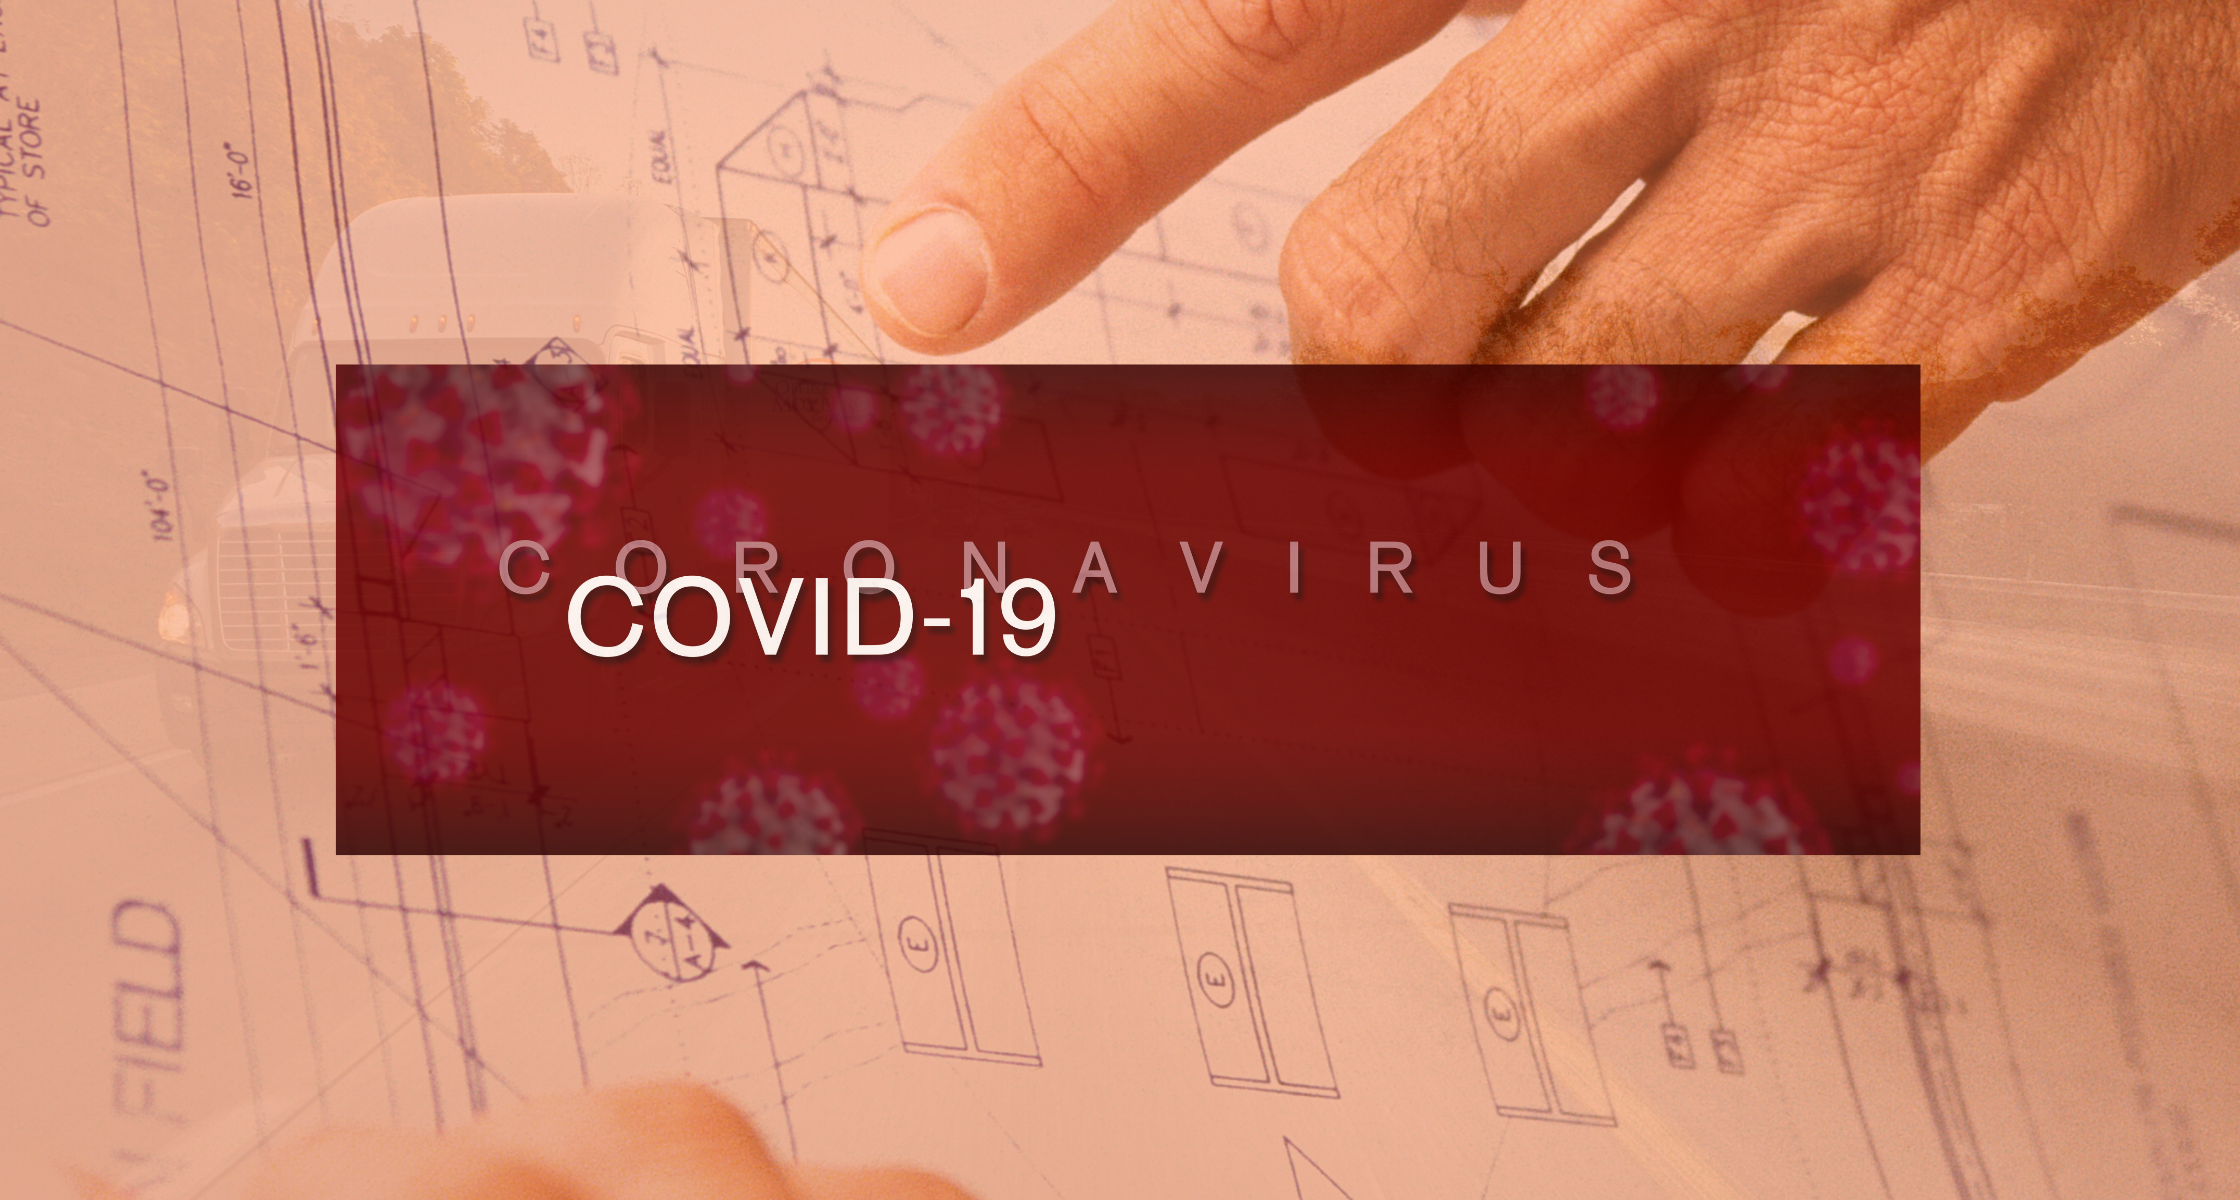 workspace blueprint with covid 19 text overlay